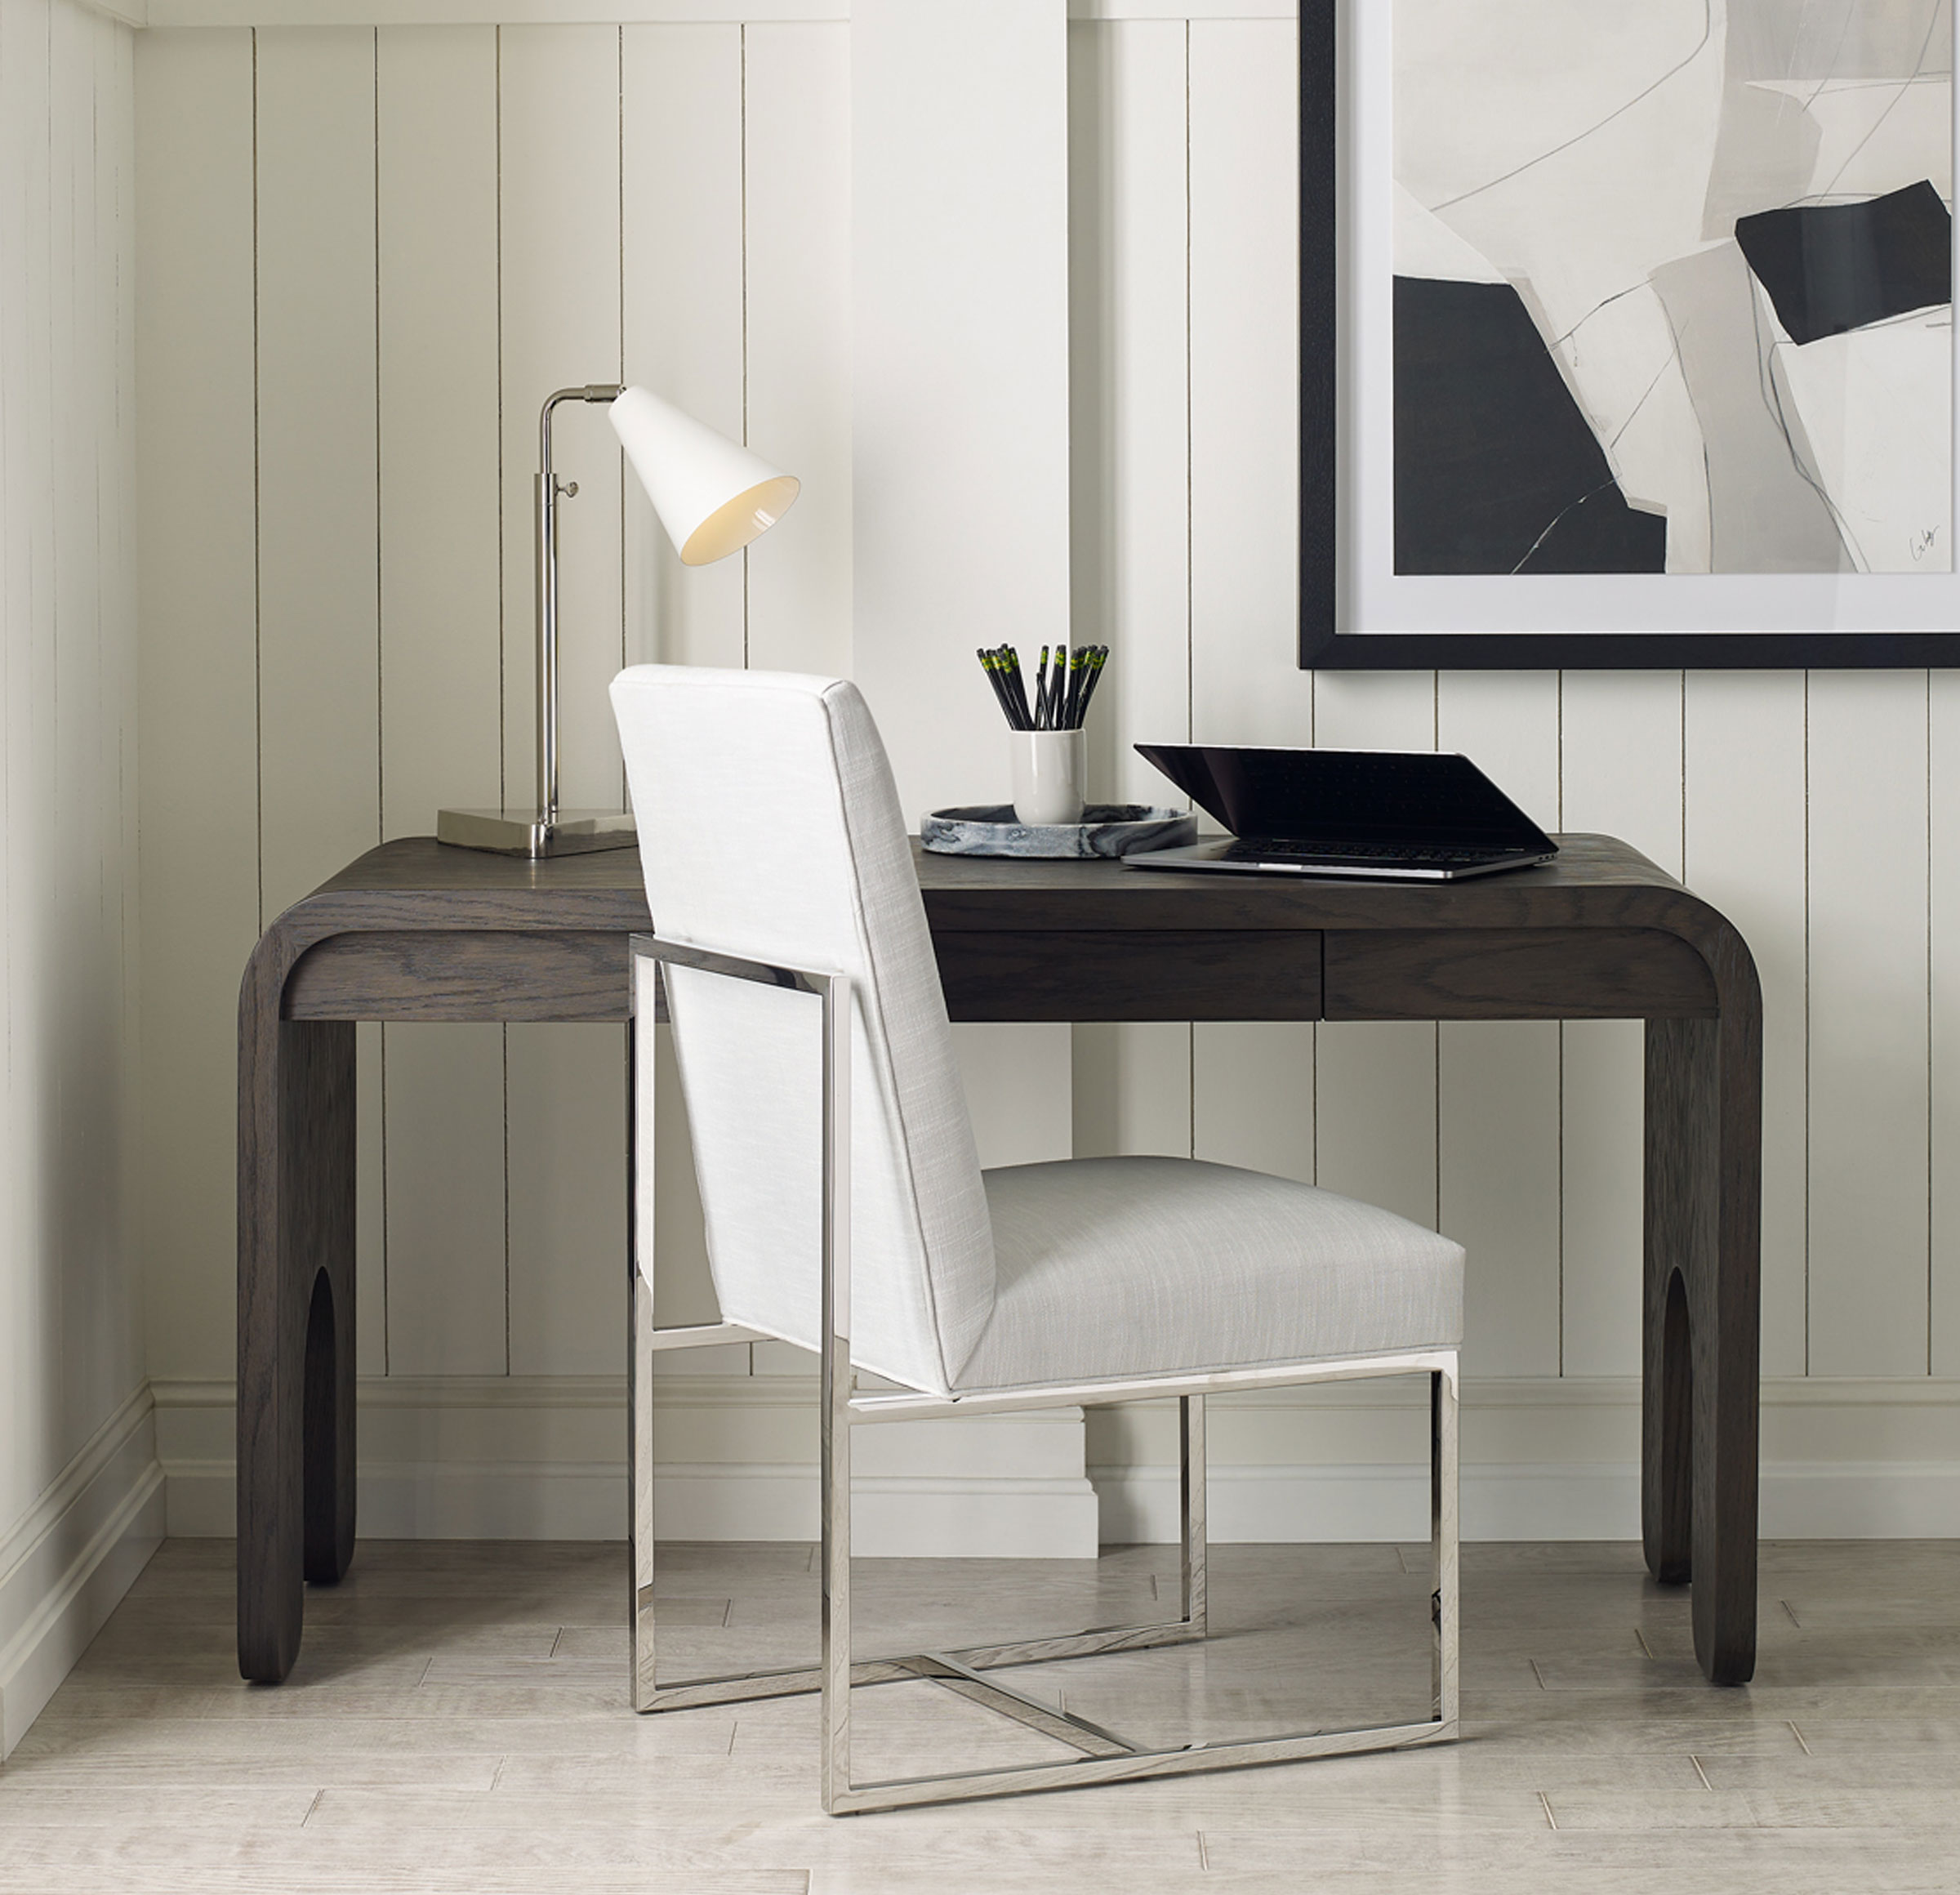 GAGE TALL DINING CHAIR - POLISHED STAINLESS STEEL, Vinyl - WHITE, hi-res